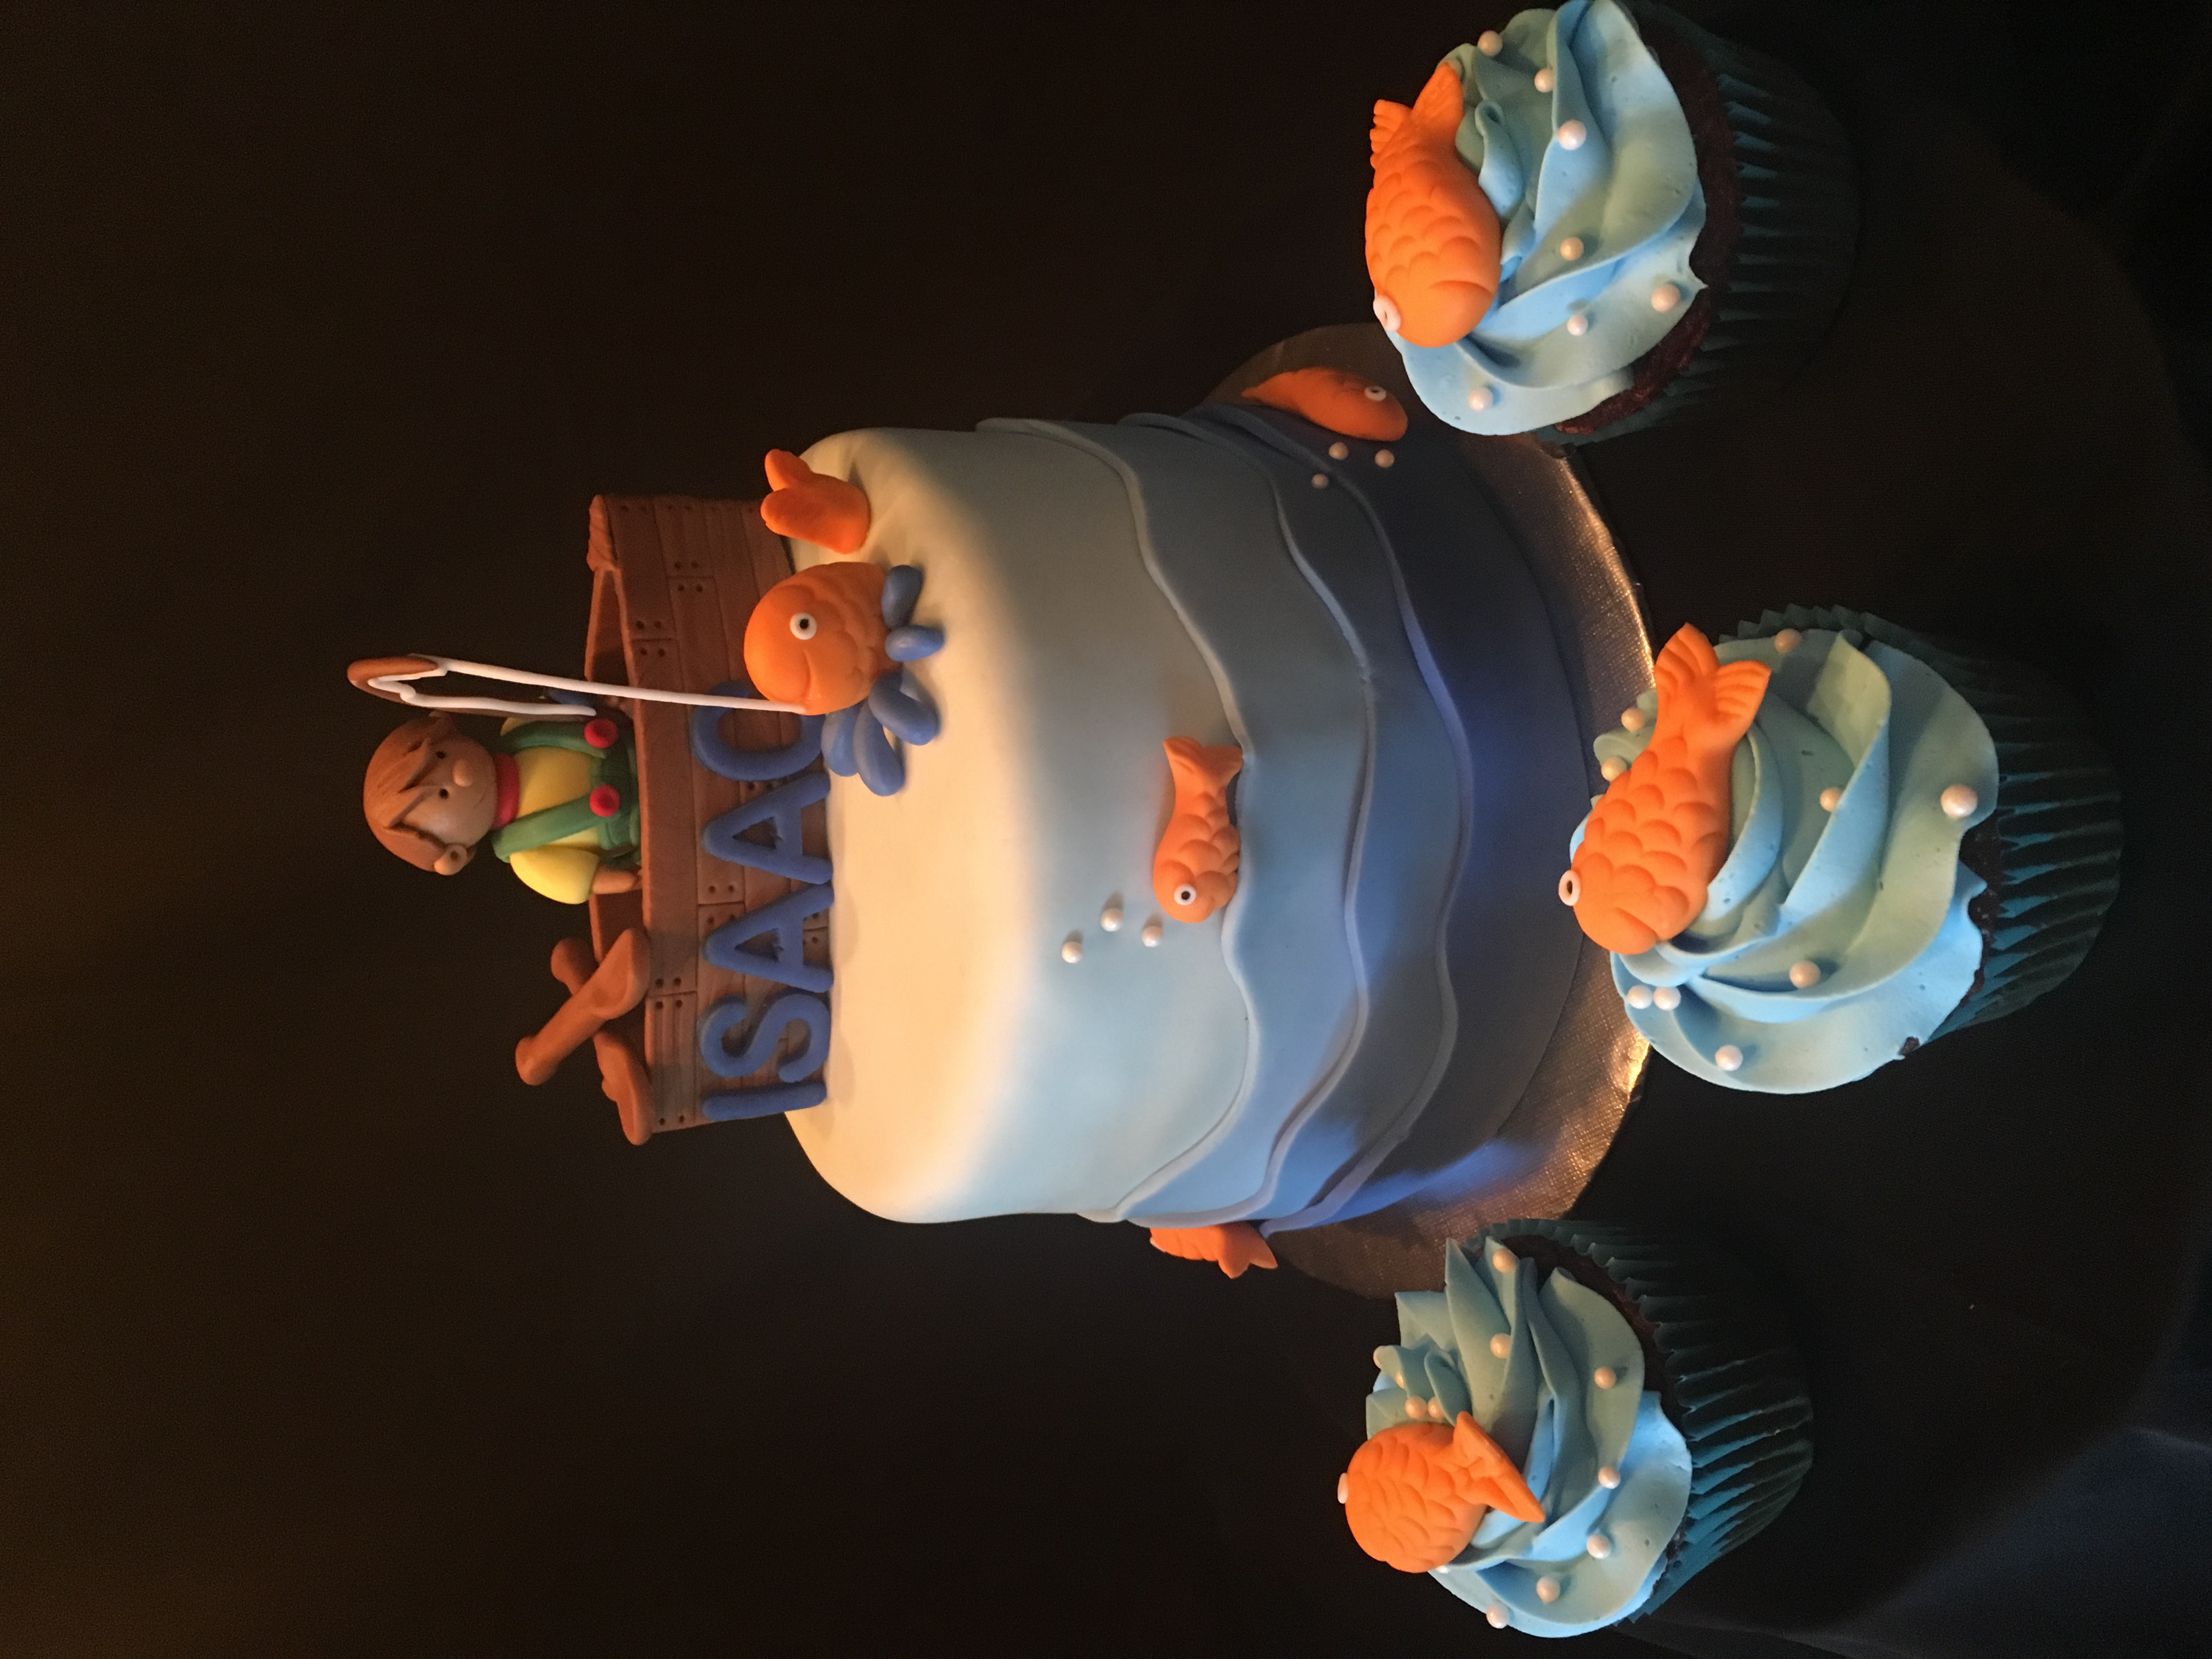 Gone Fishing Cake/cupcakes